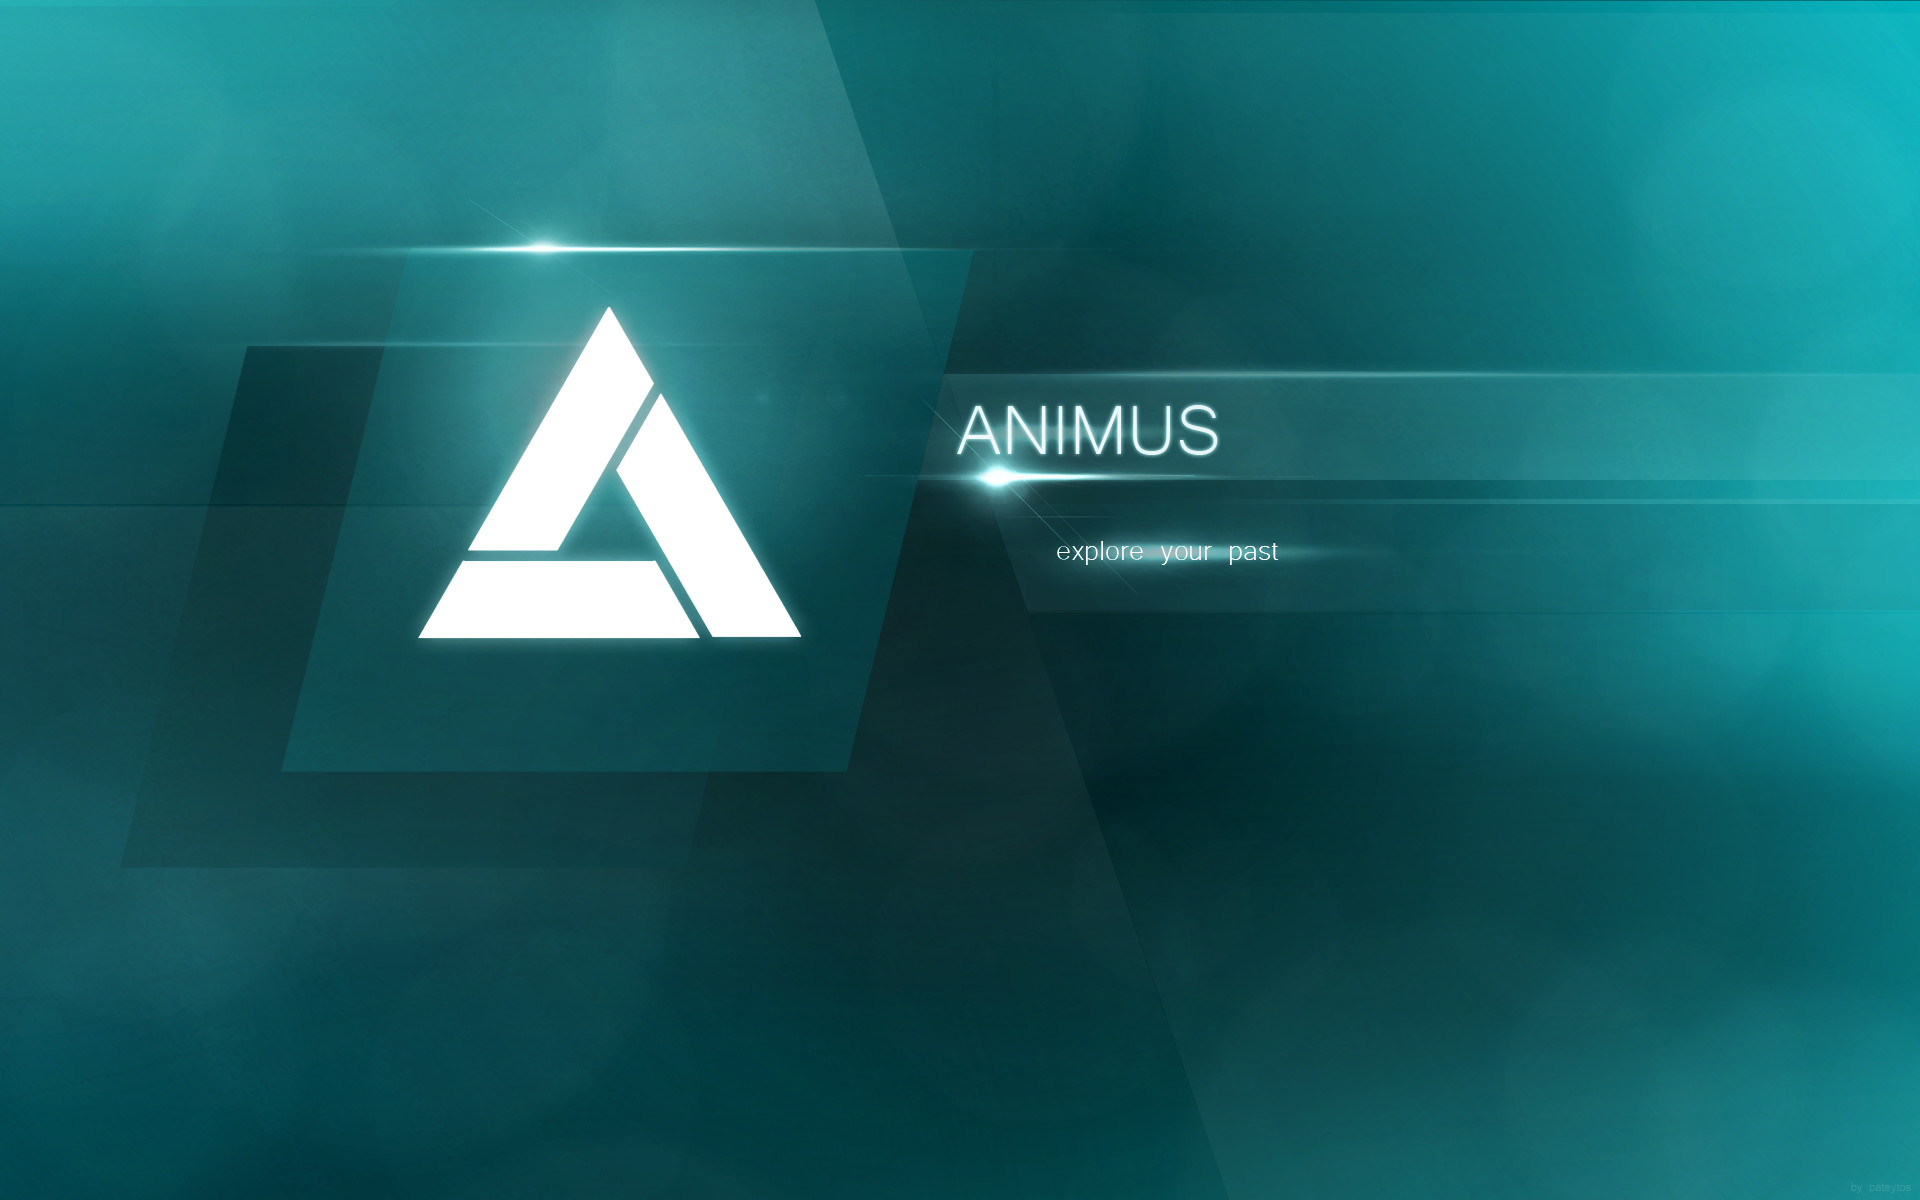 1920x1200 Animus Interface - Live Wallpaper for Android Market - YouTube